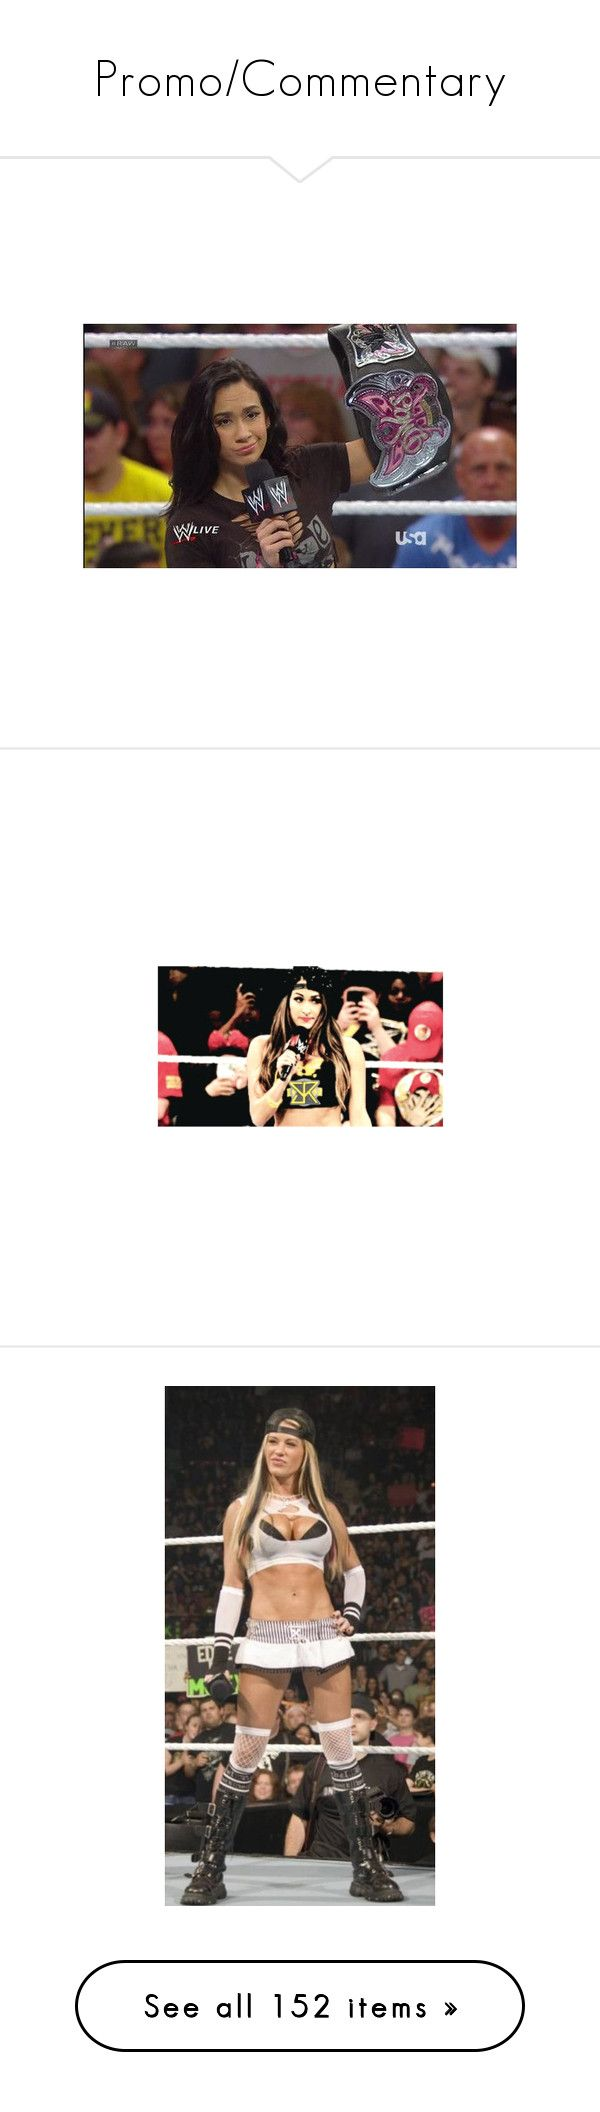 """Promo/Commentary"" by leeandbulletfan ❤ liked on Polyvore featuring wwe, aj lee, home, home decor, ashley massaro, bella twins, frames, people, wwe diva and kaitlyn"